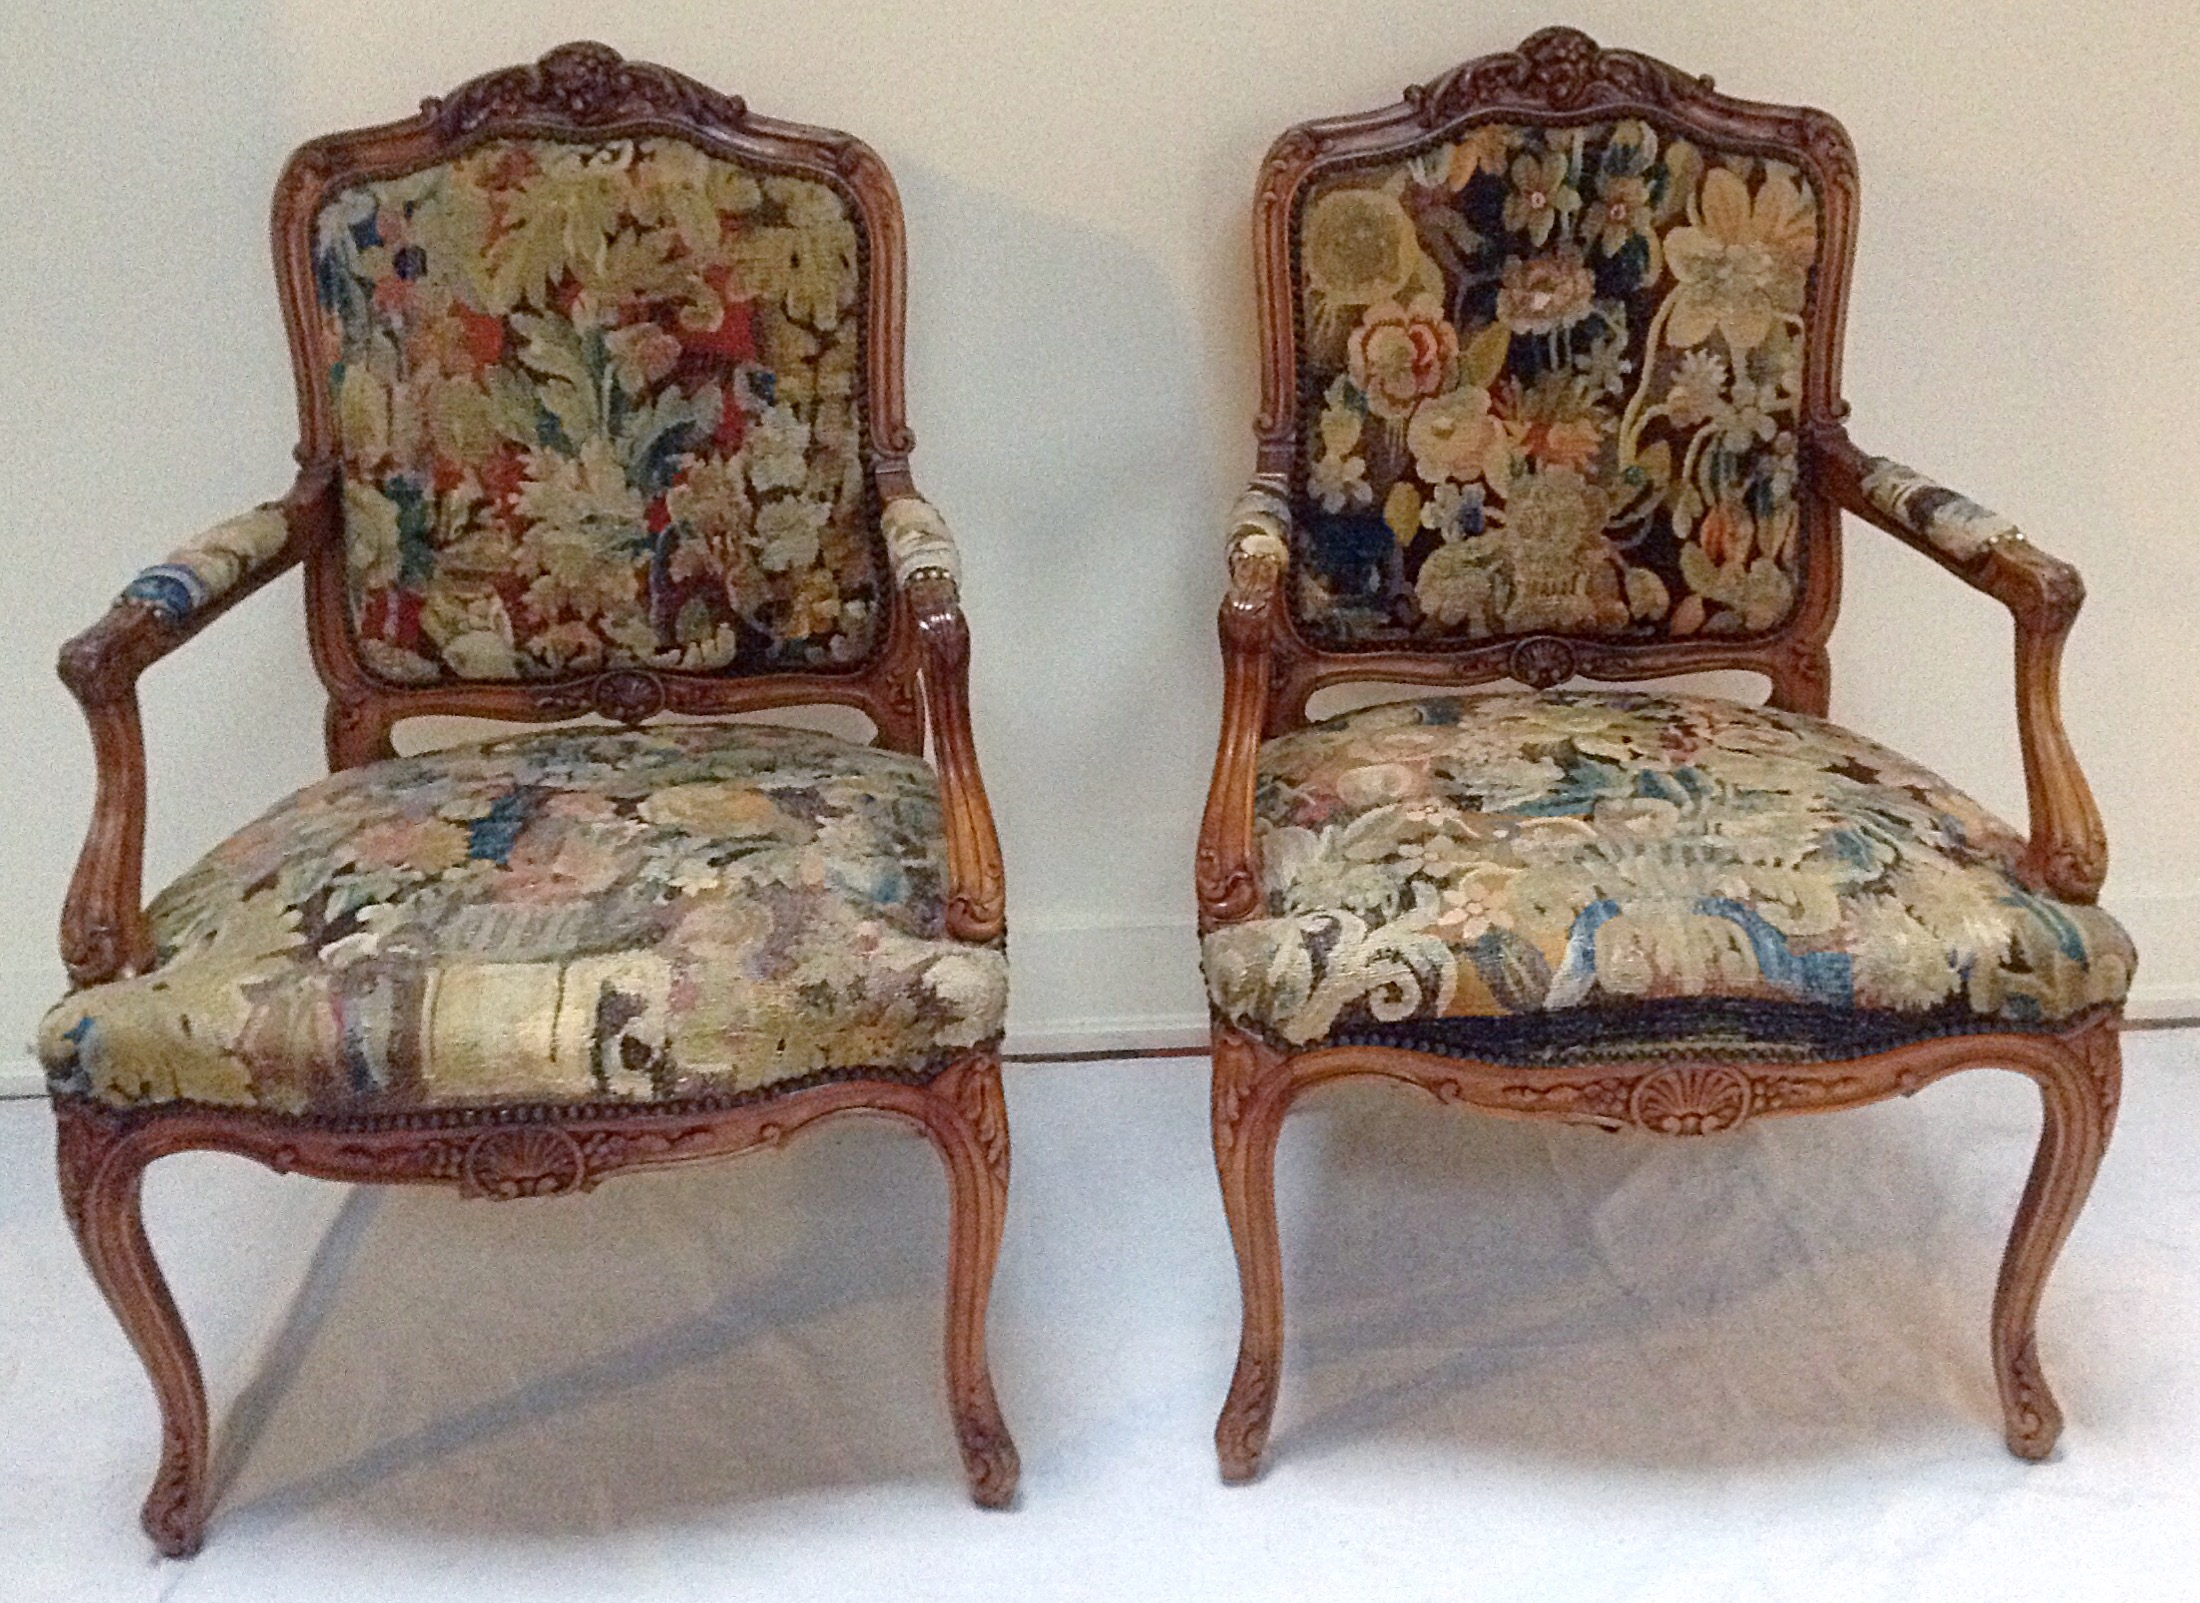 Antique French Tapestry Upholstered Chairs   A Pair   Image 2 Of 8